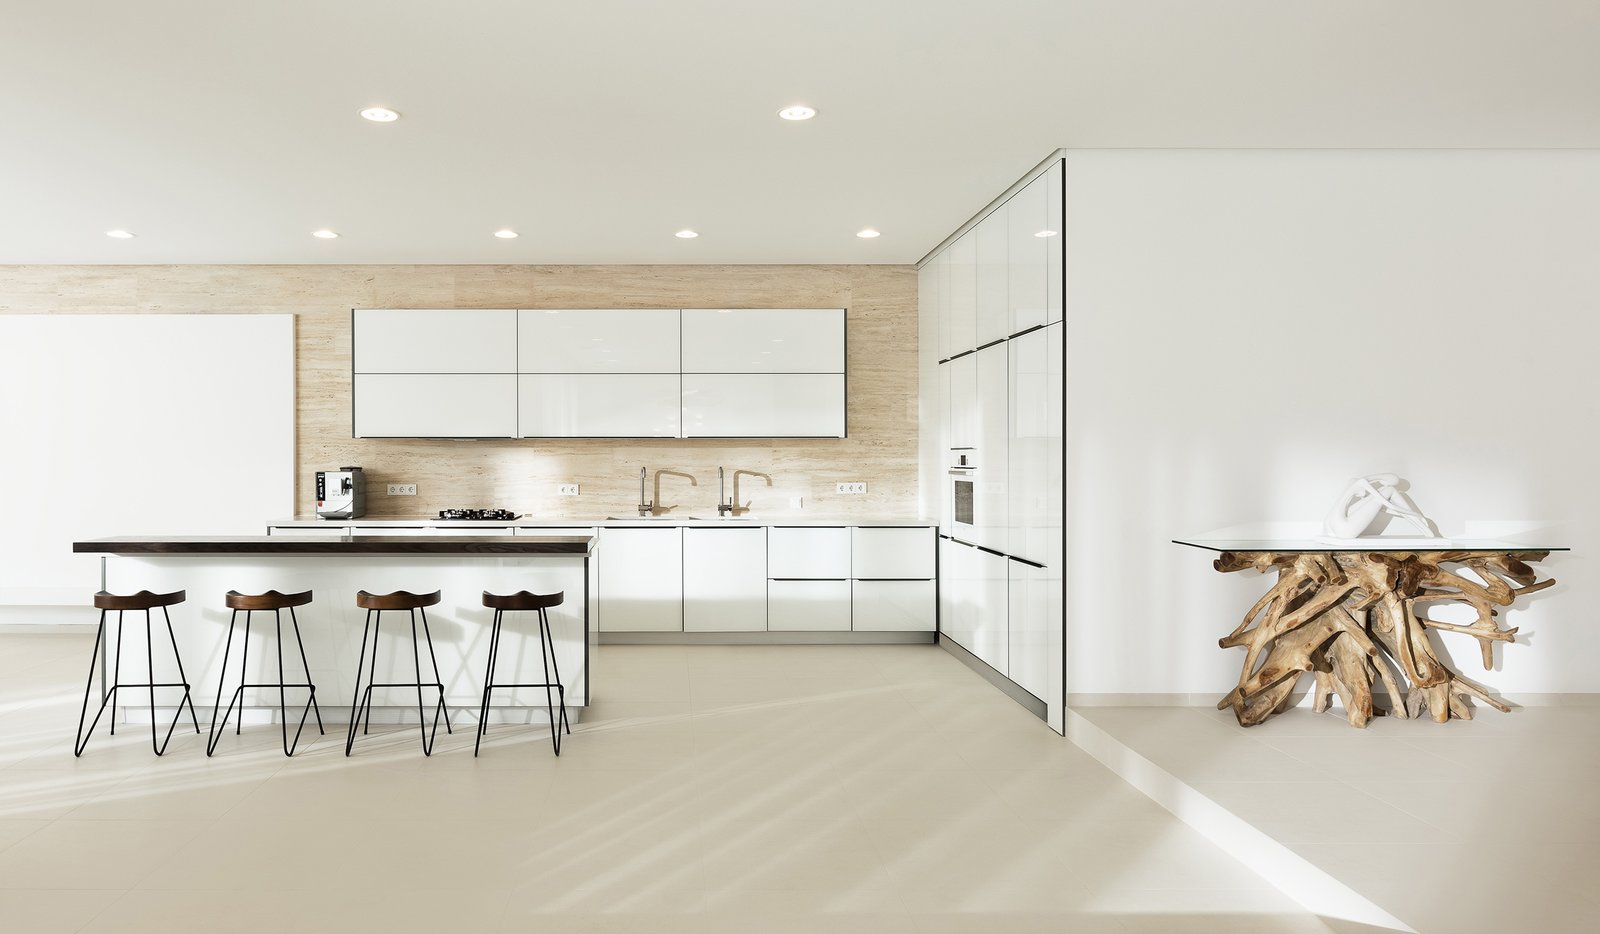 Kitchen, Quartzite, Stone, White, Wood, Metal, Travertine, Porcelain Tile, Stone Slab, Ceiling, Refrigerator, Wall Oven, Microwave, Dishwasher, Ice Maker, Cooktops, and Drop In WH Residence | M3 Architects  Best Kitchen Drop In Wall Oven Porcelain Tile Metal Photos from WH Residence